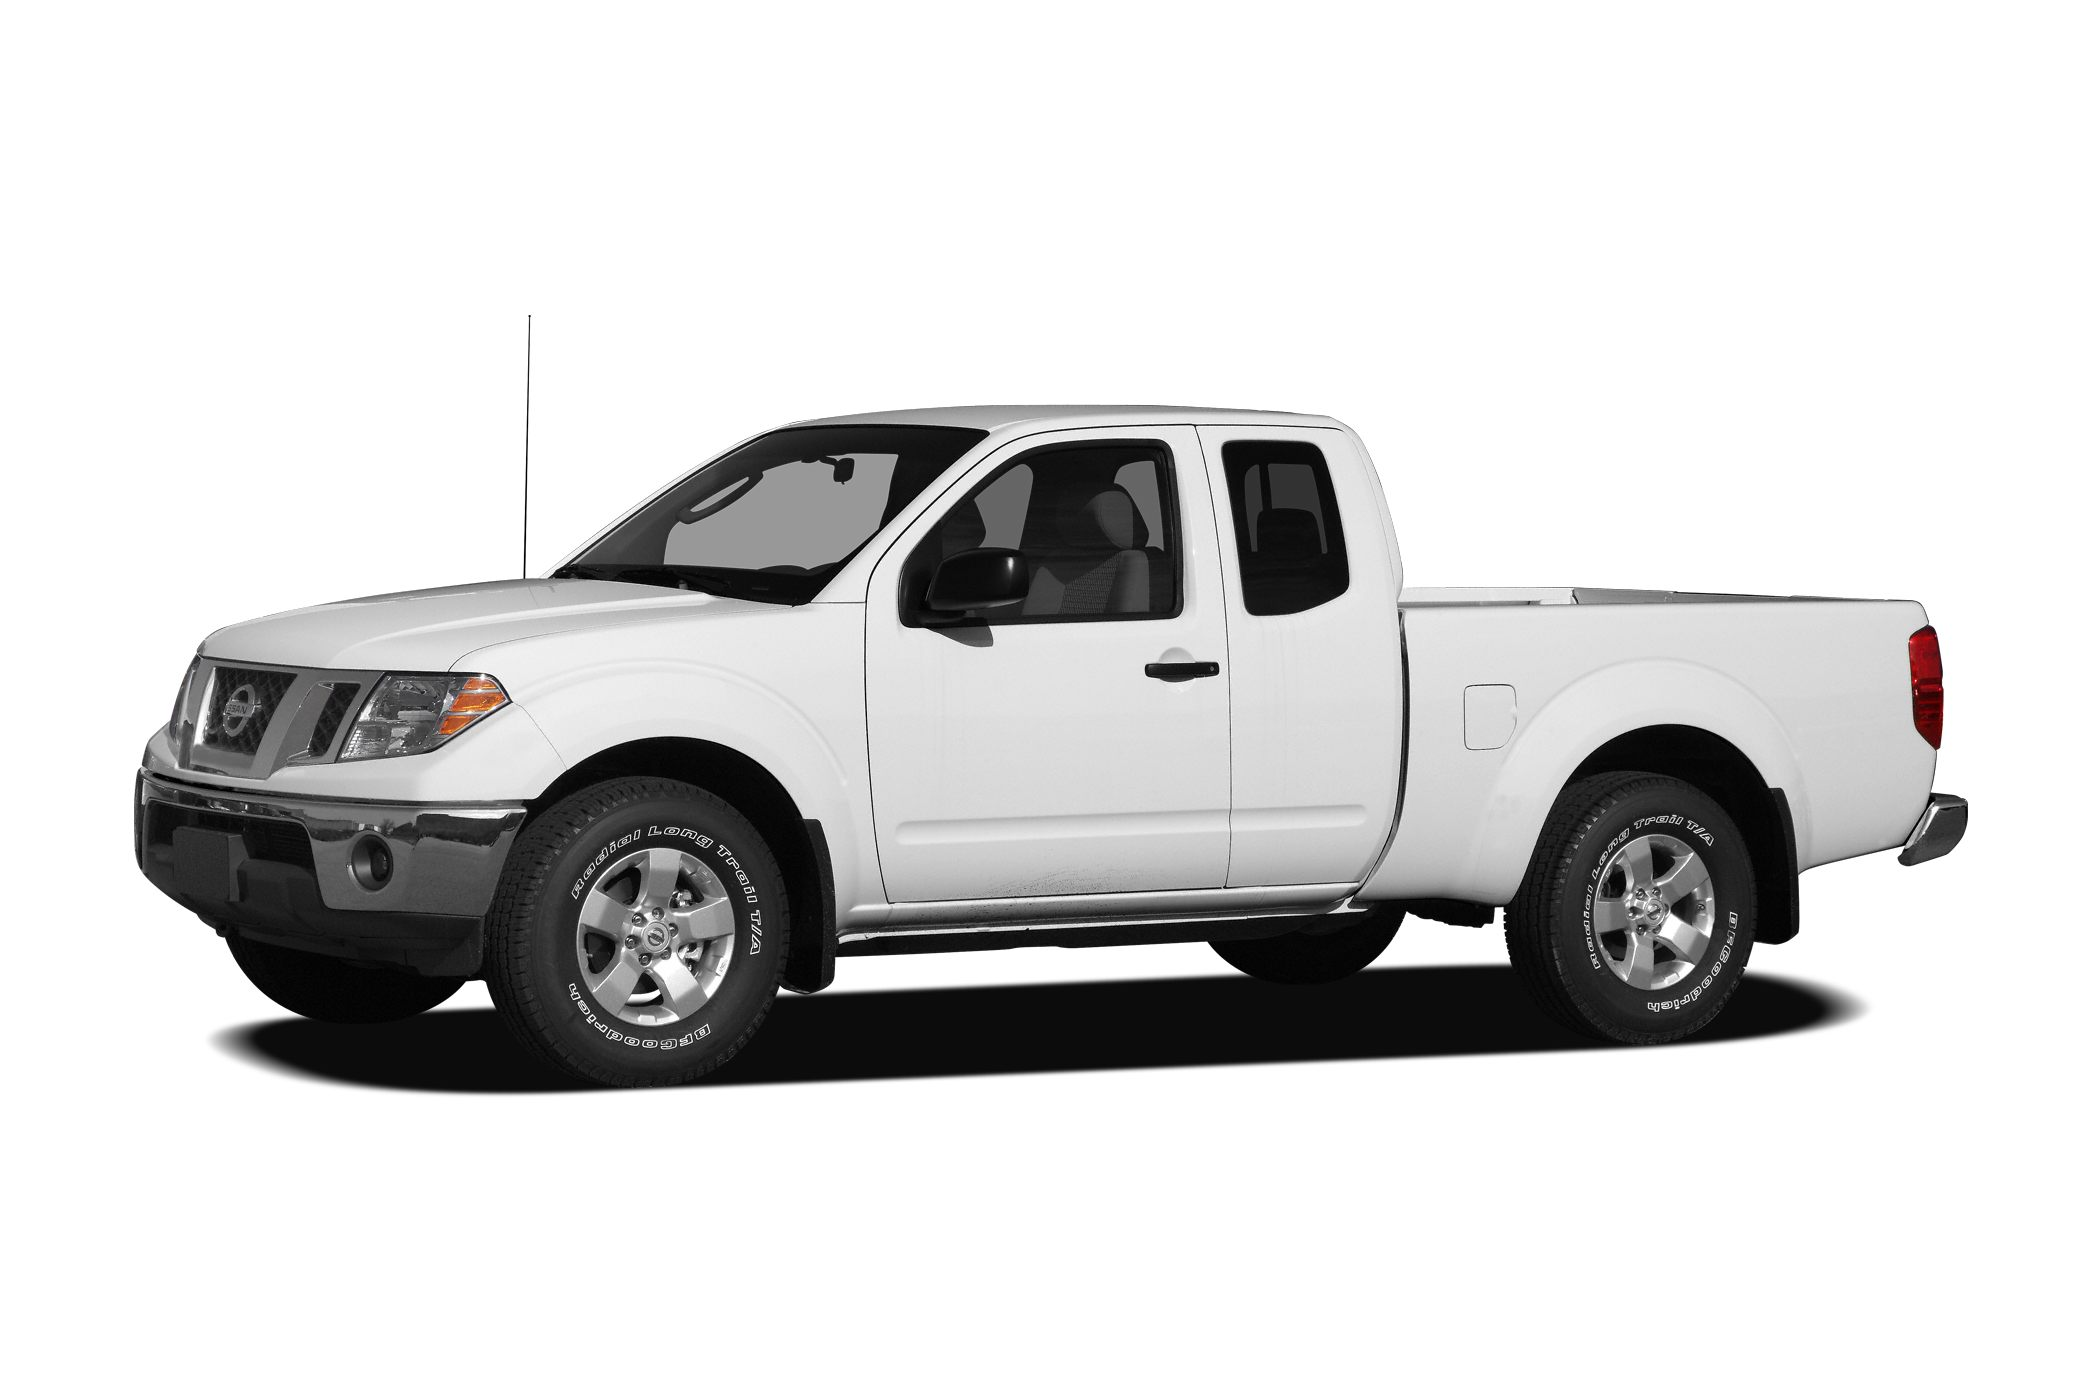 USC00NIT121B0101 - 2010 Nissan Frontier Crew Cab Se Long Bed 4x4 At